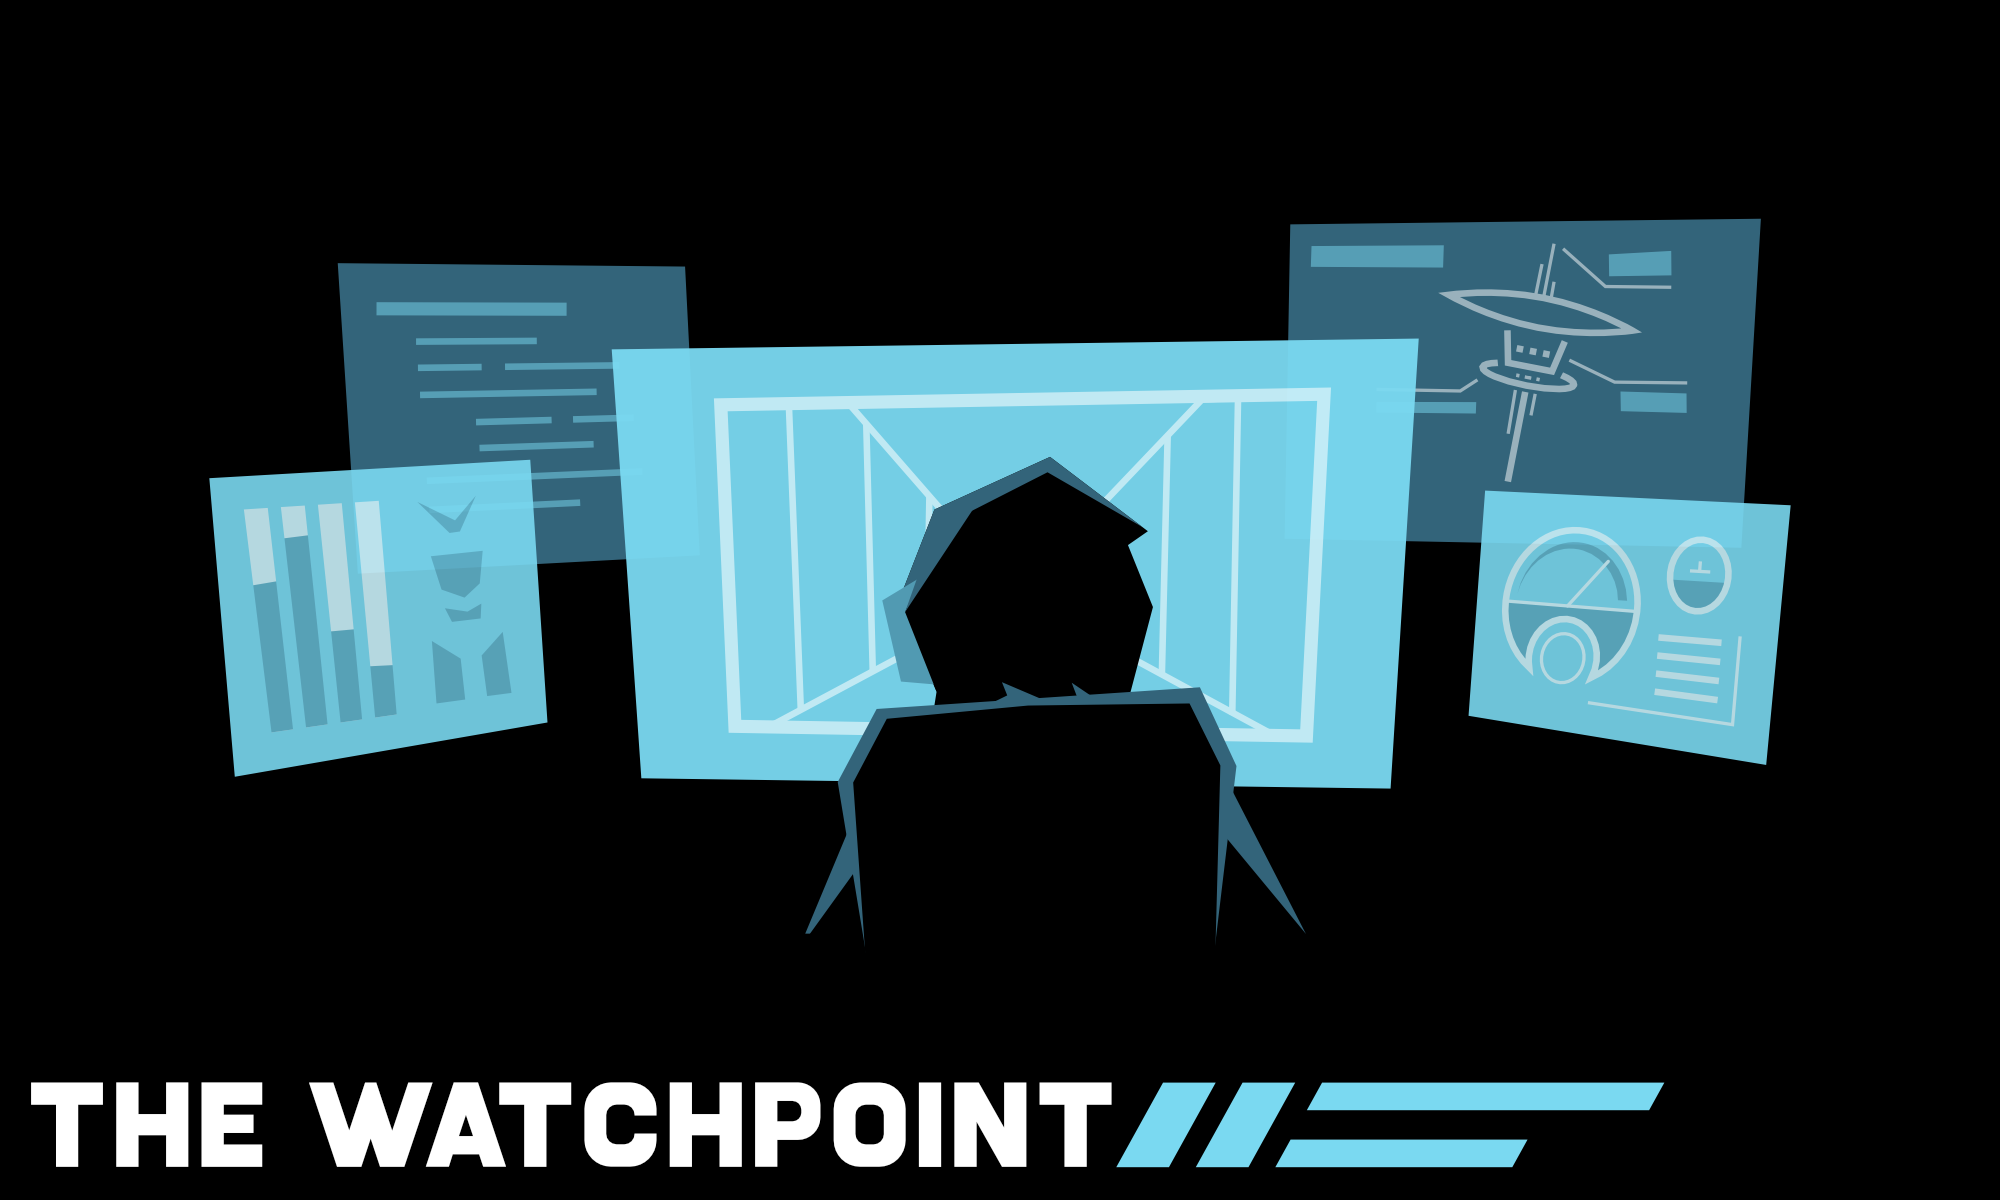 The Watchpoint